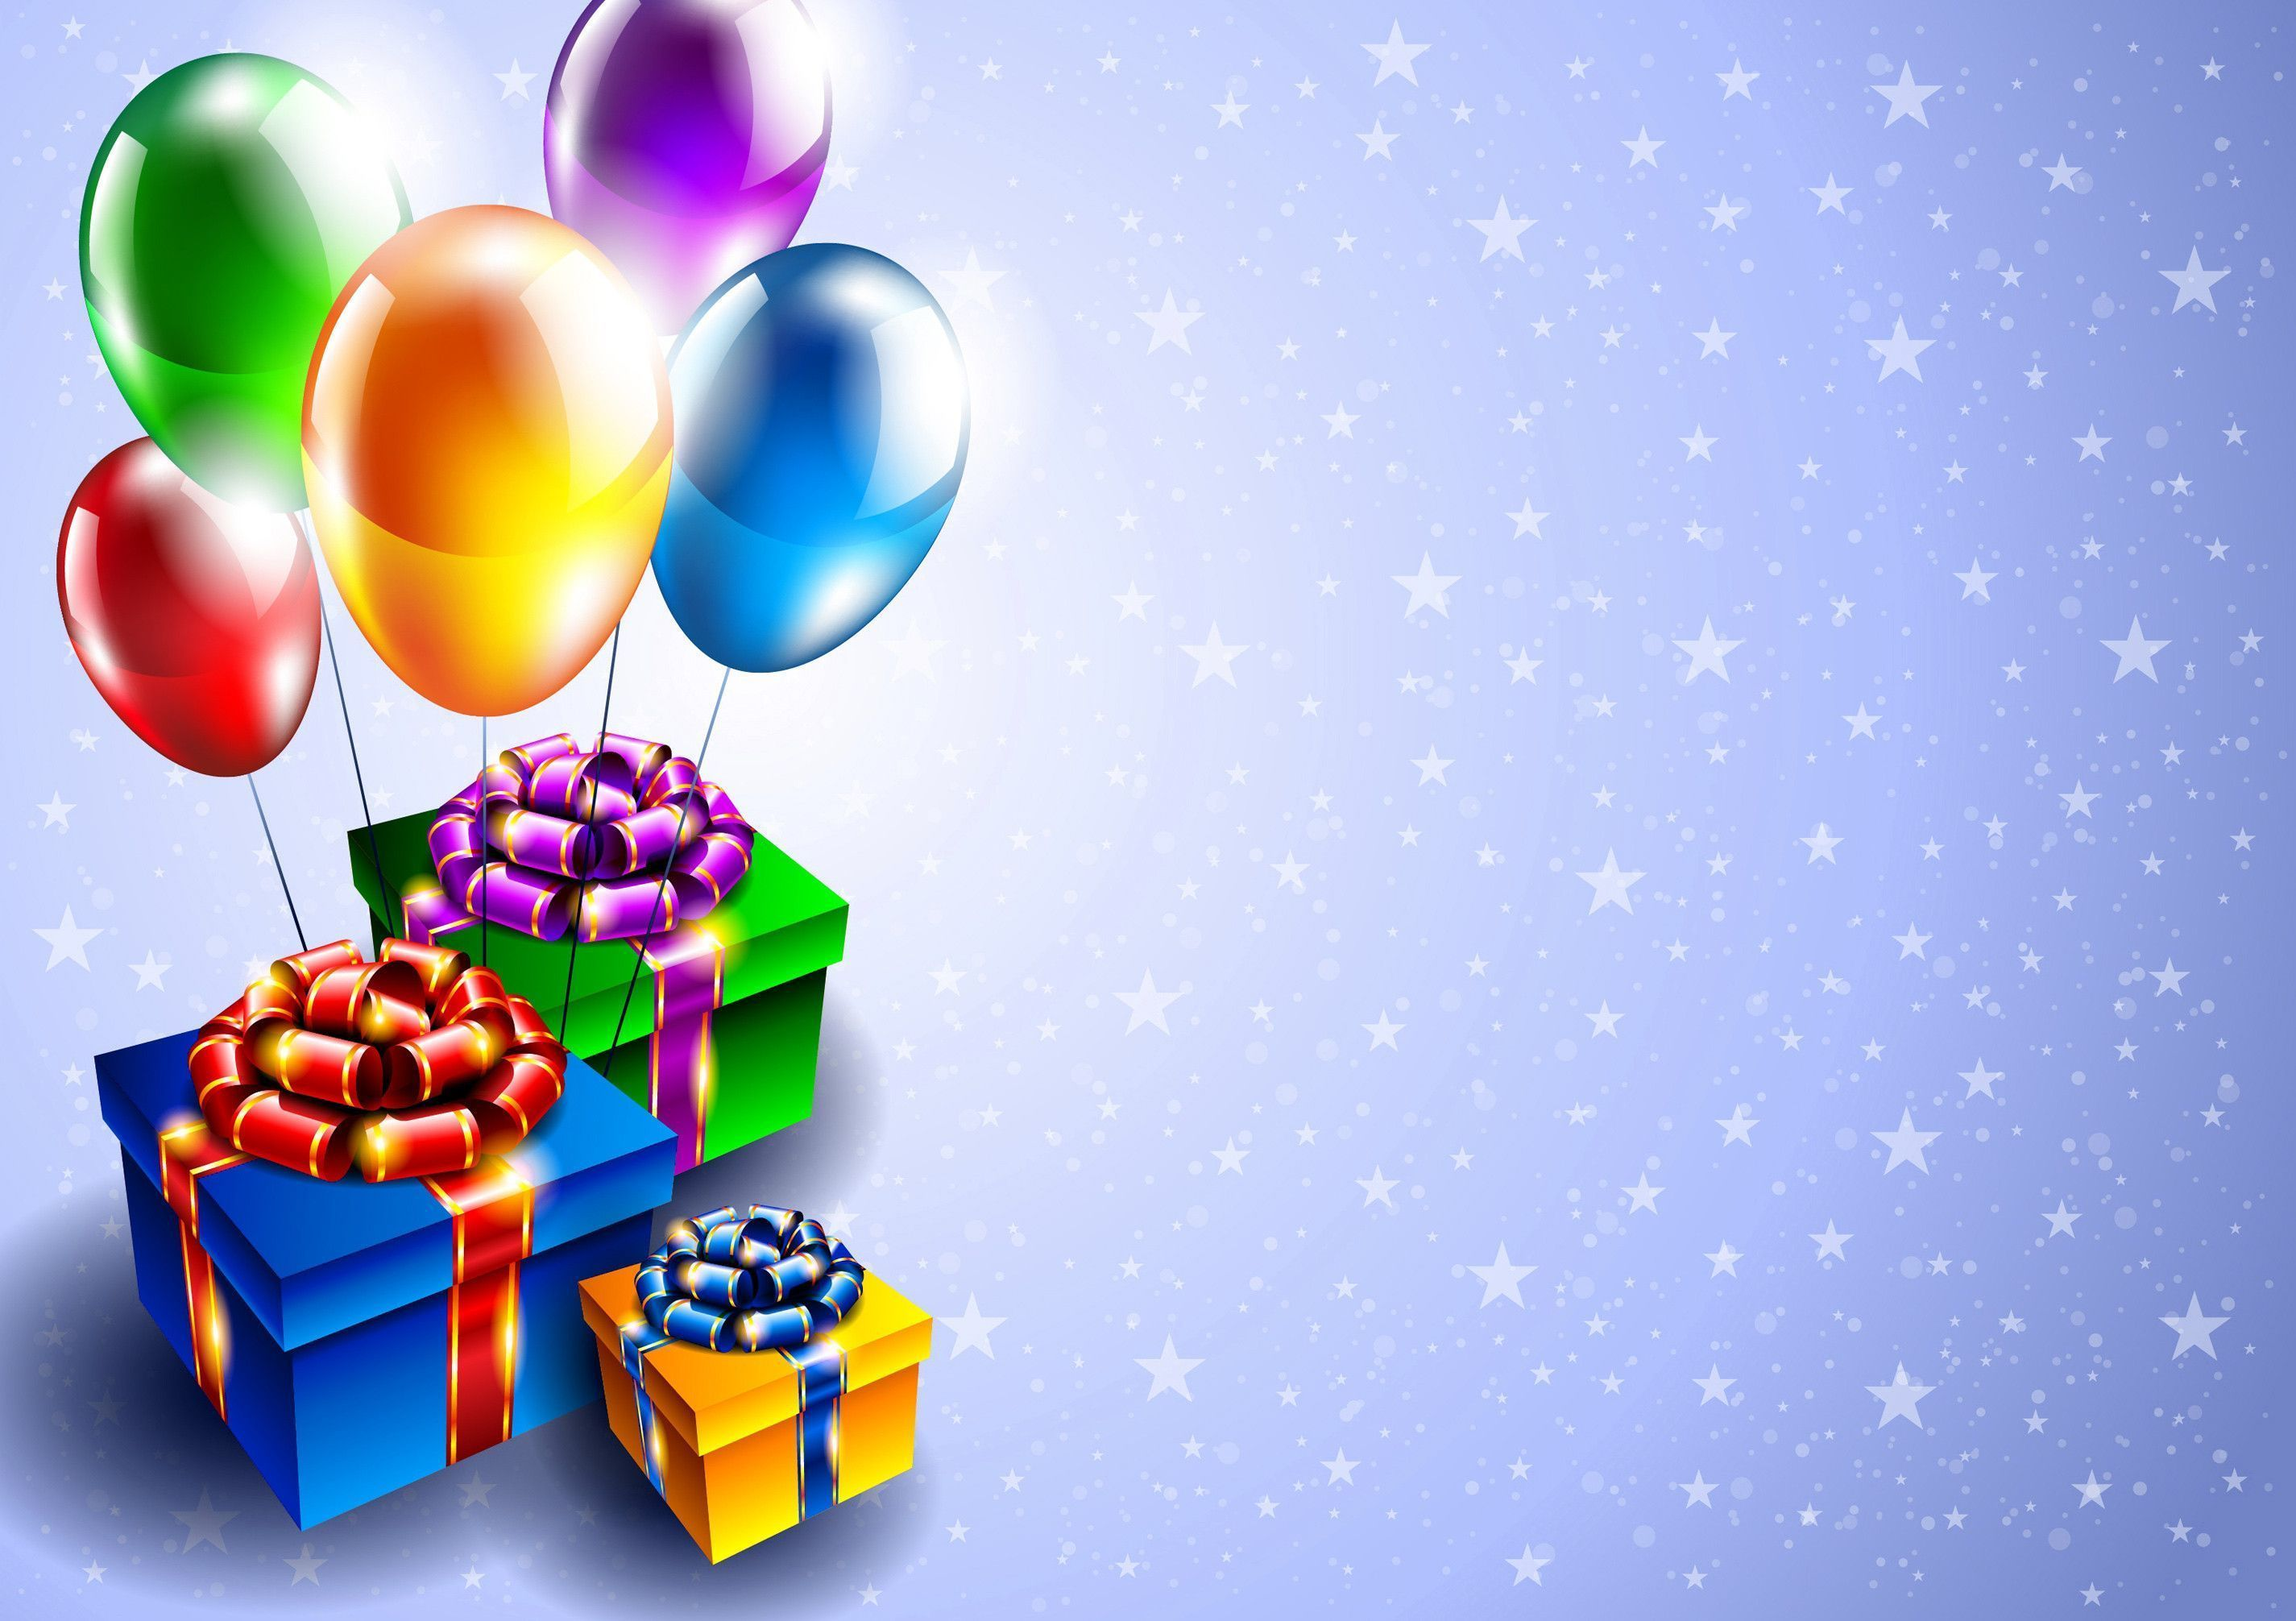 Birthday Background Images Hd 3 In 2020 Birthday Background